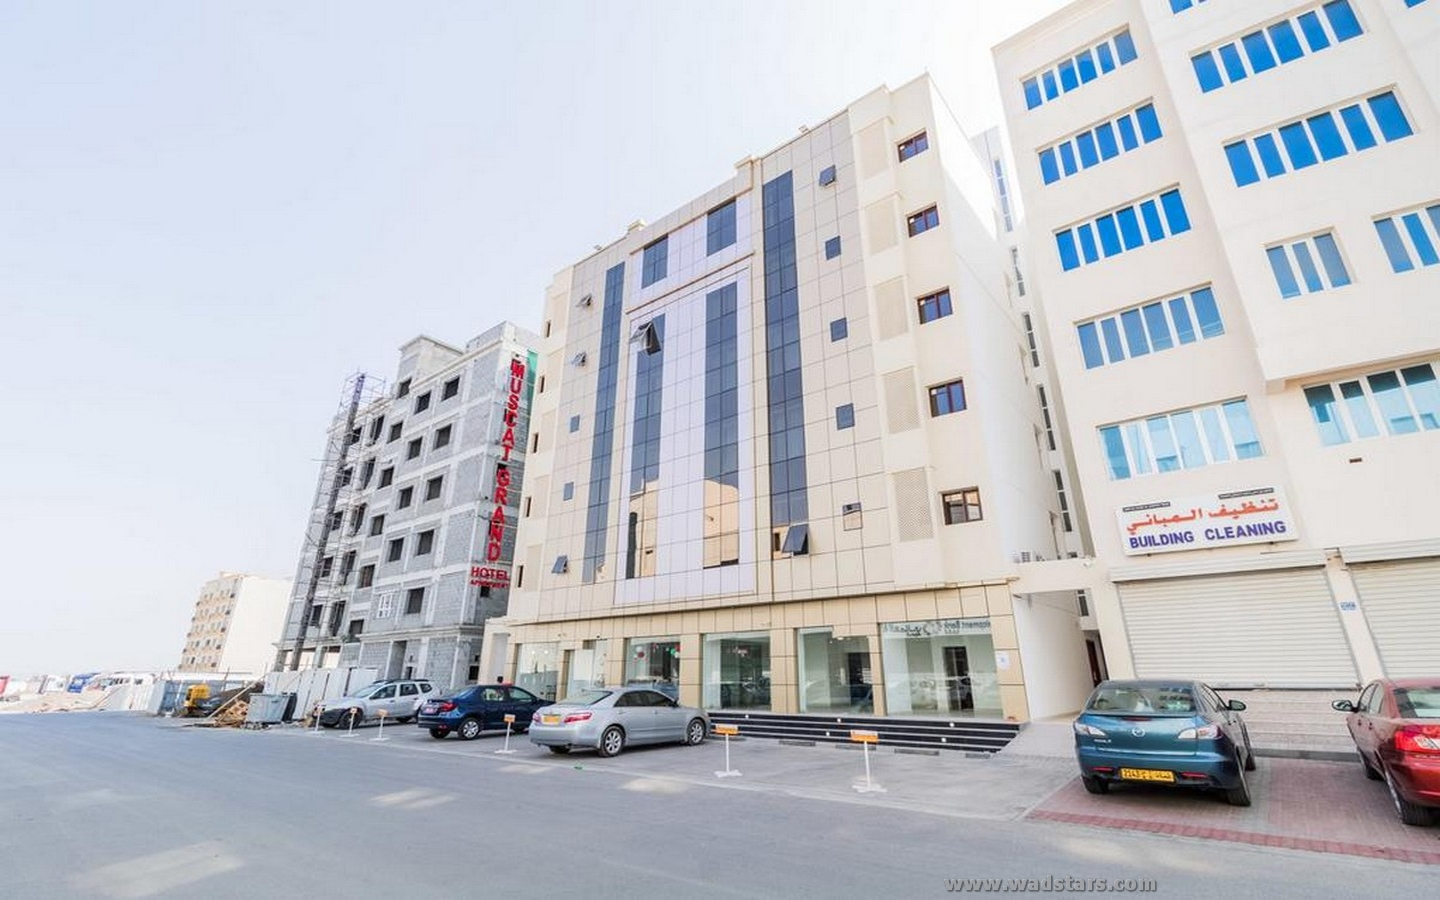 Muscat Grand Hotel Apartment OYO 106 near Mawaleh Fruits and Vegetables Market 3 scaled